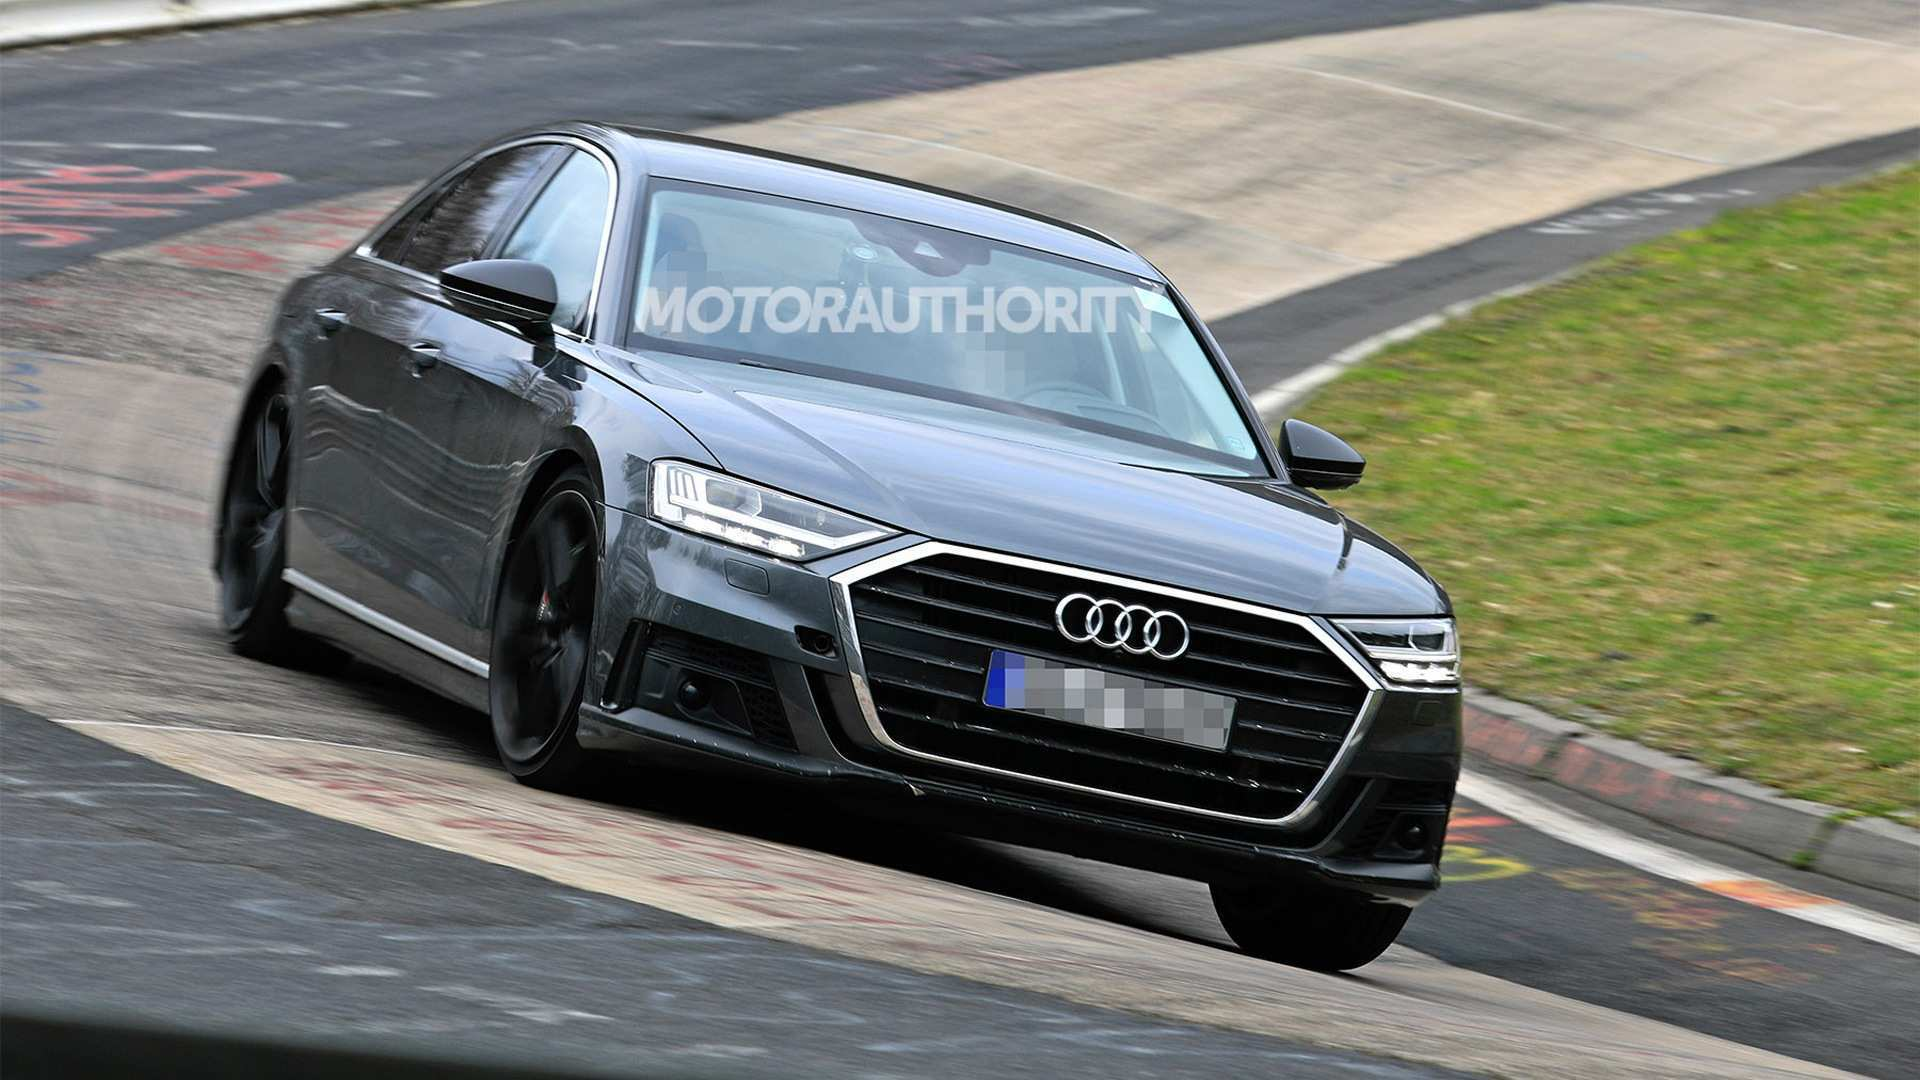 52 Great 2019 Audi S8 Plus Exterior and Interior by 2019 Audi S8 Plus